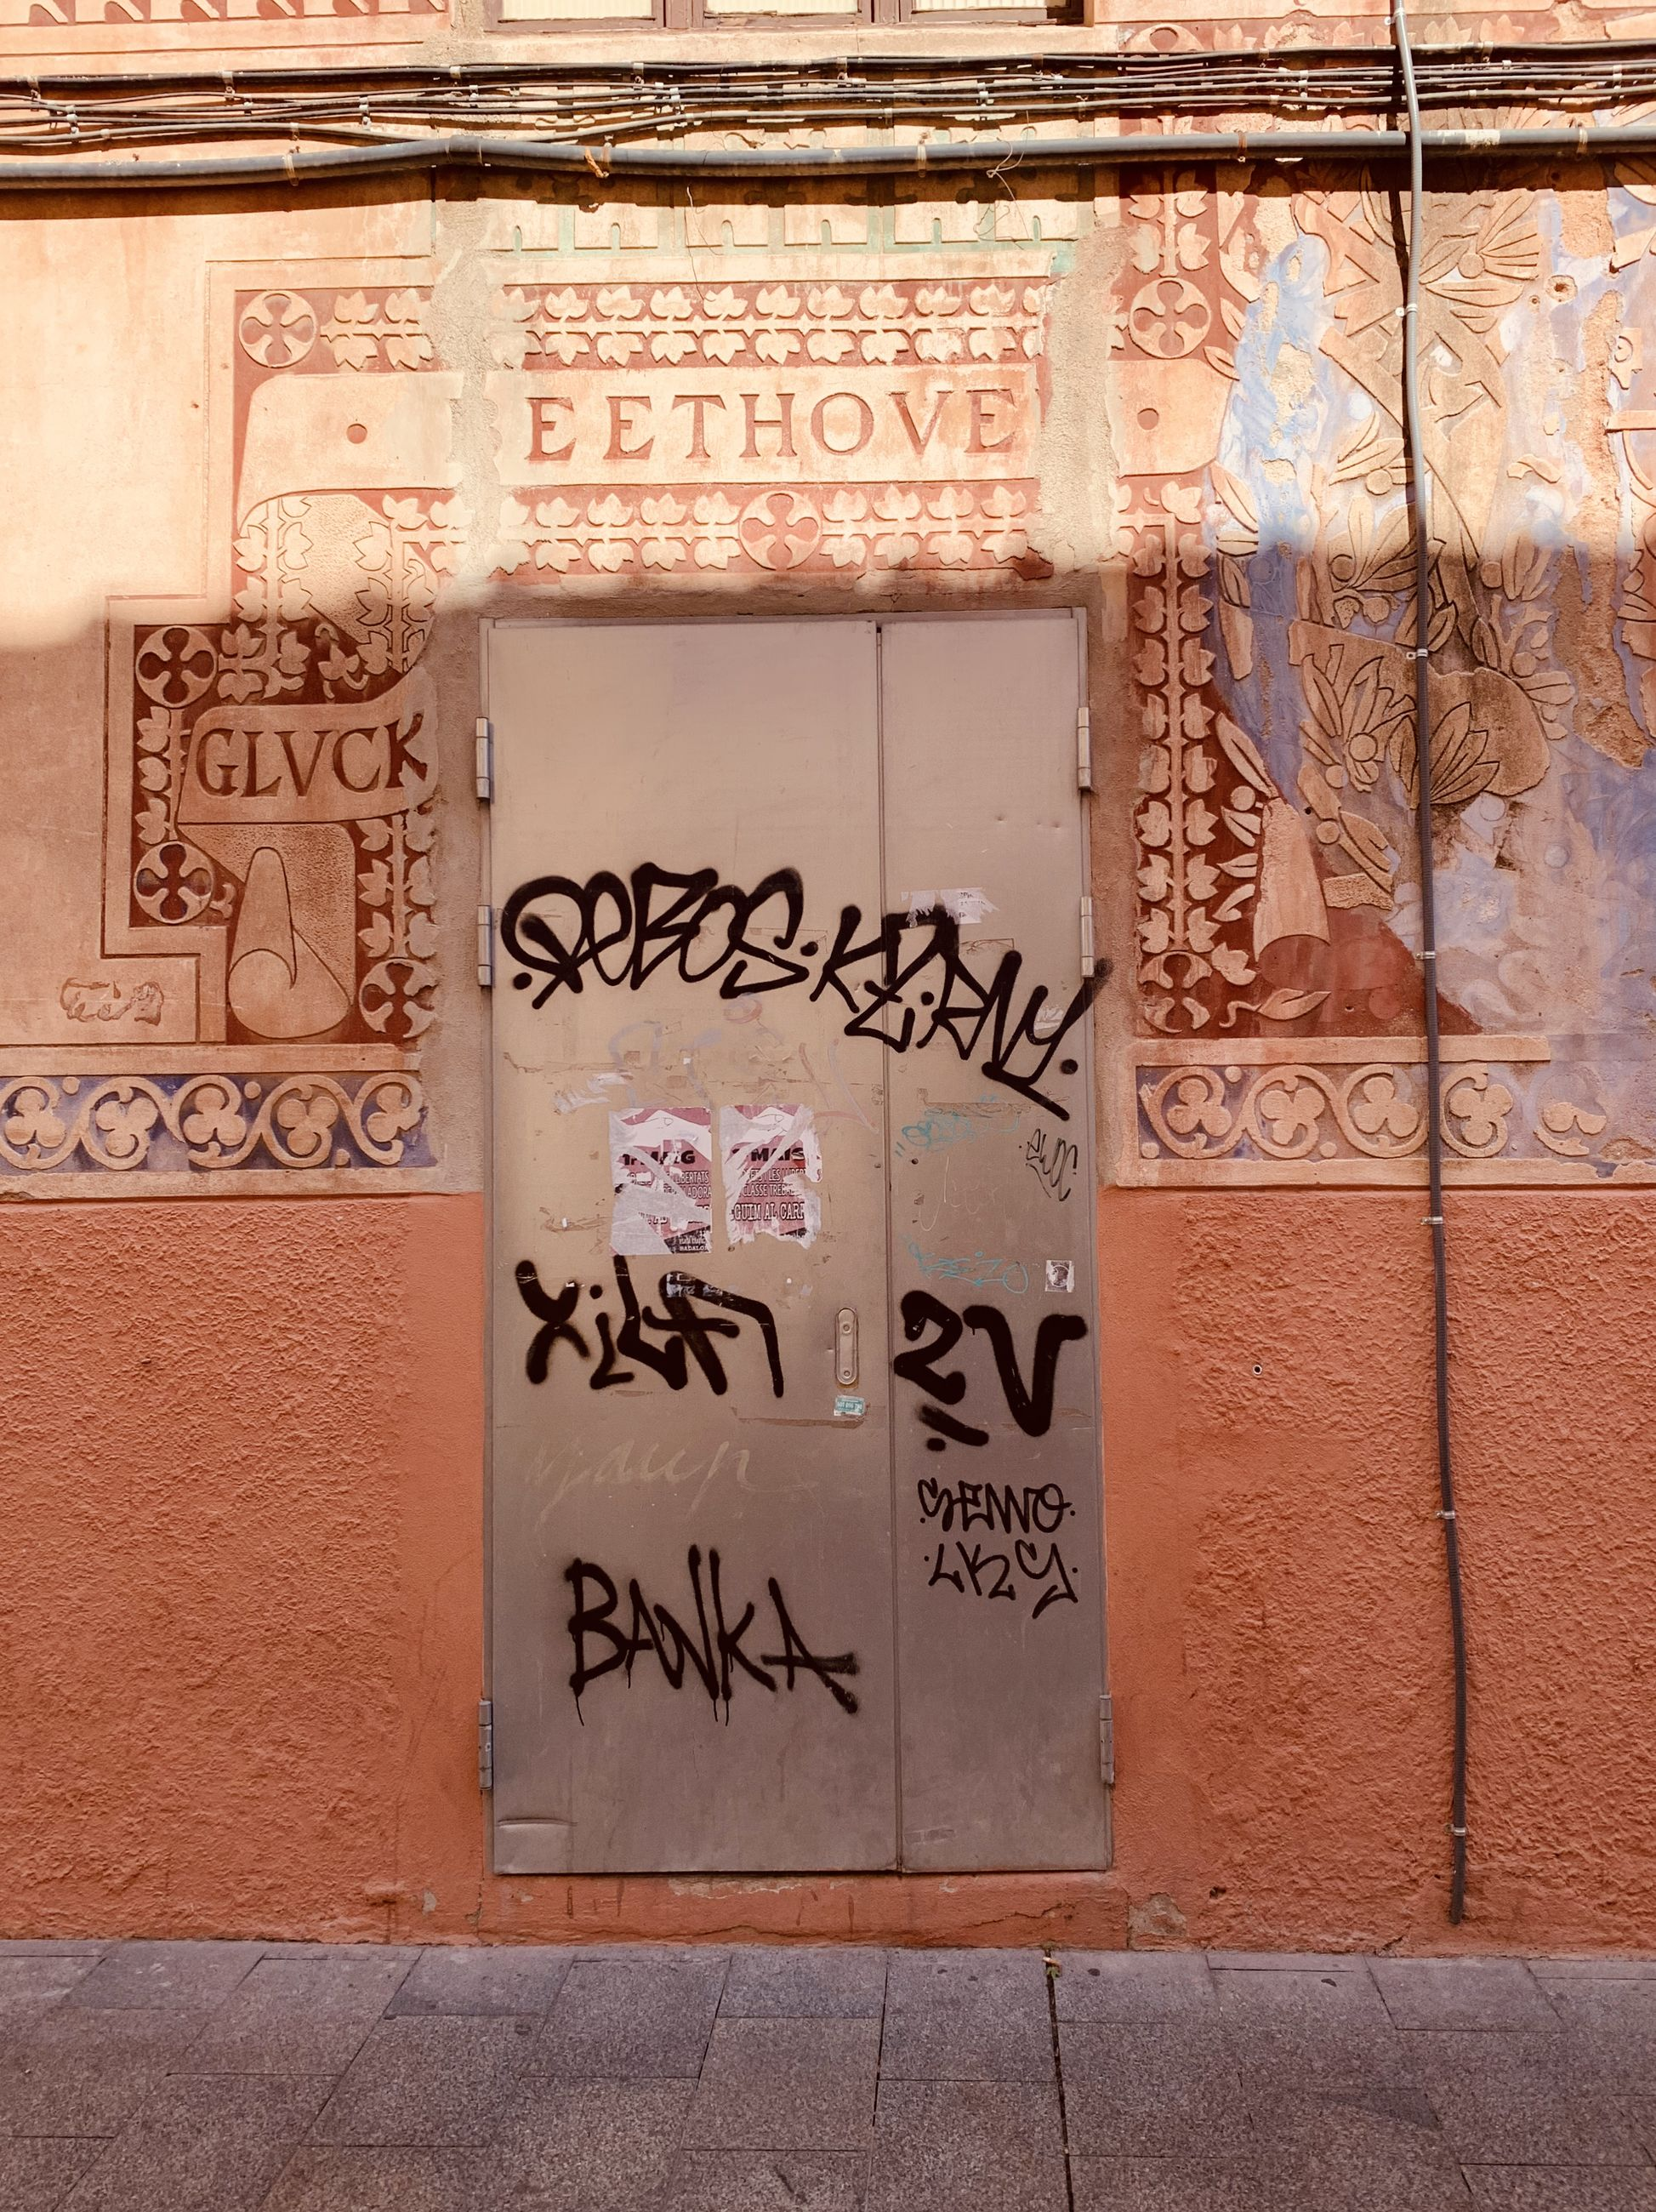 TEXT ON WALL WITH GRAFFITI